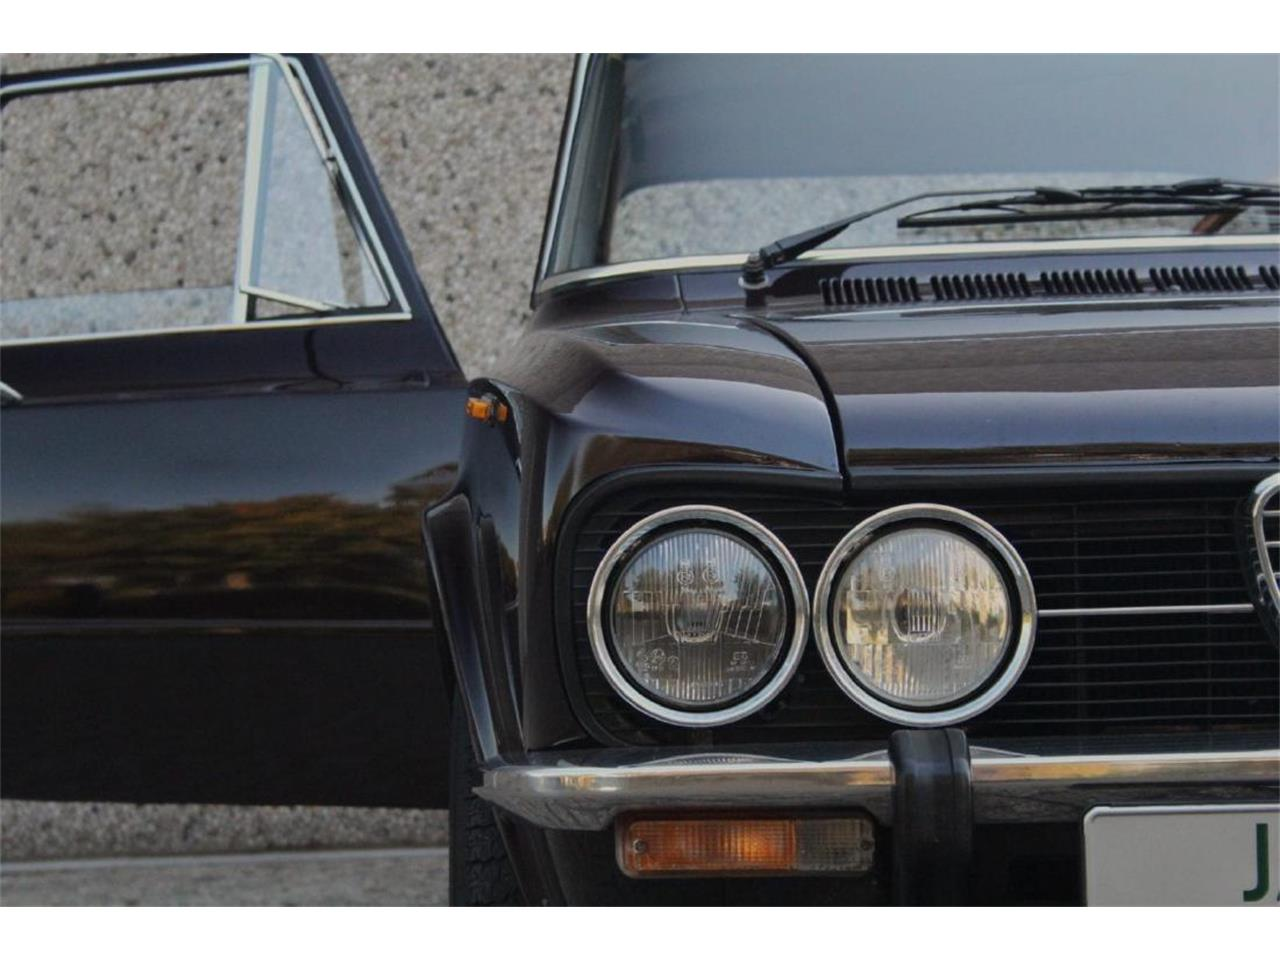 Large Picture of '76 Alfa Romeo Giulia Super Nuova Super 1300 Auction Vehicle Offered by Live Auctioneers - P13P